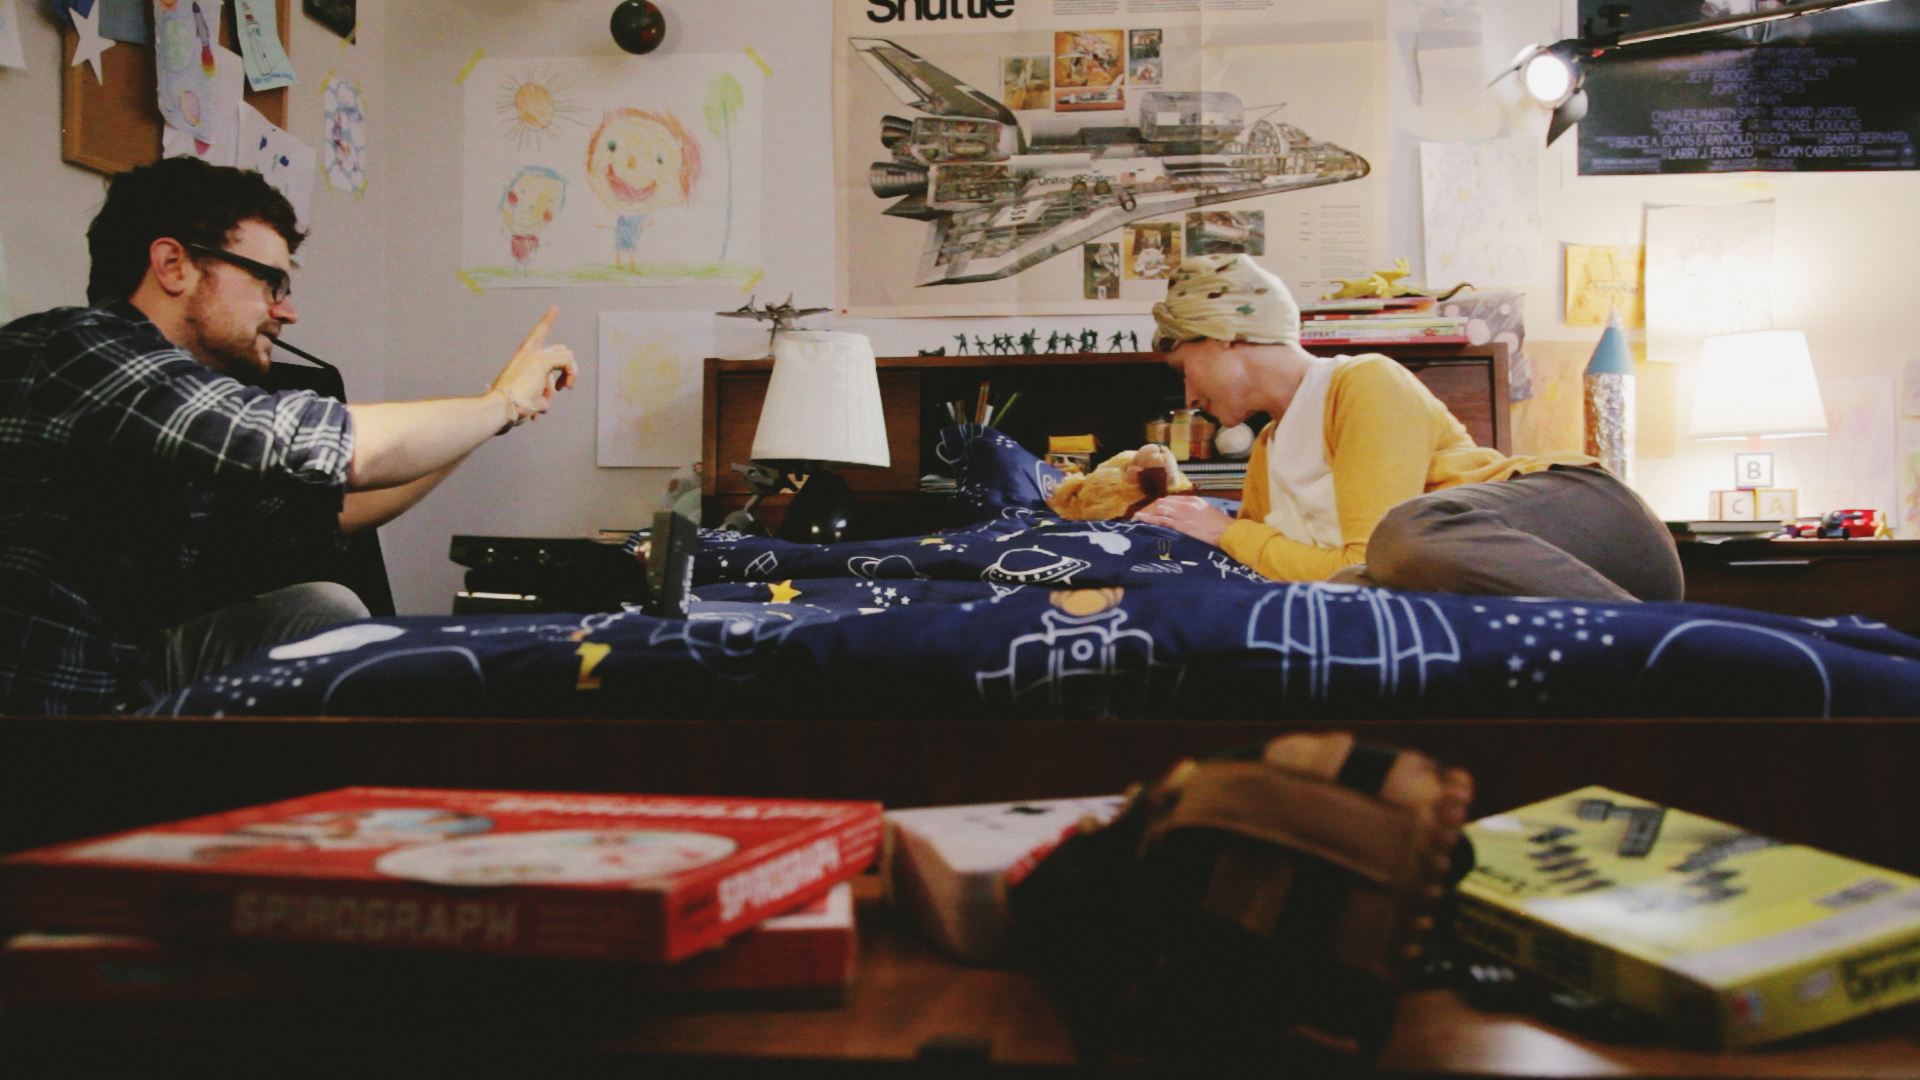 MINDCASTLE-from-1994-young-kids-bedroom-03.jpg